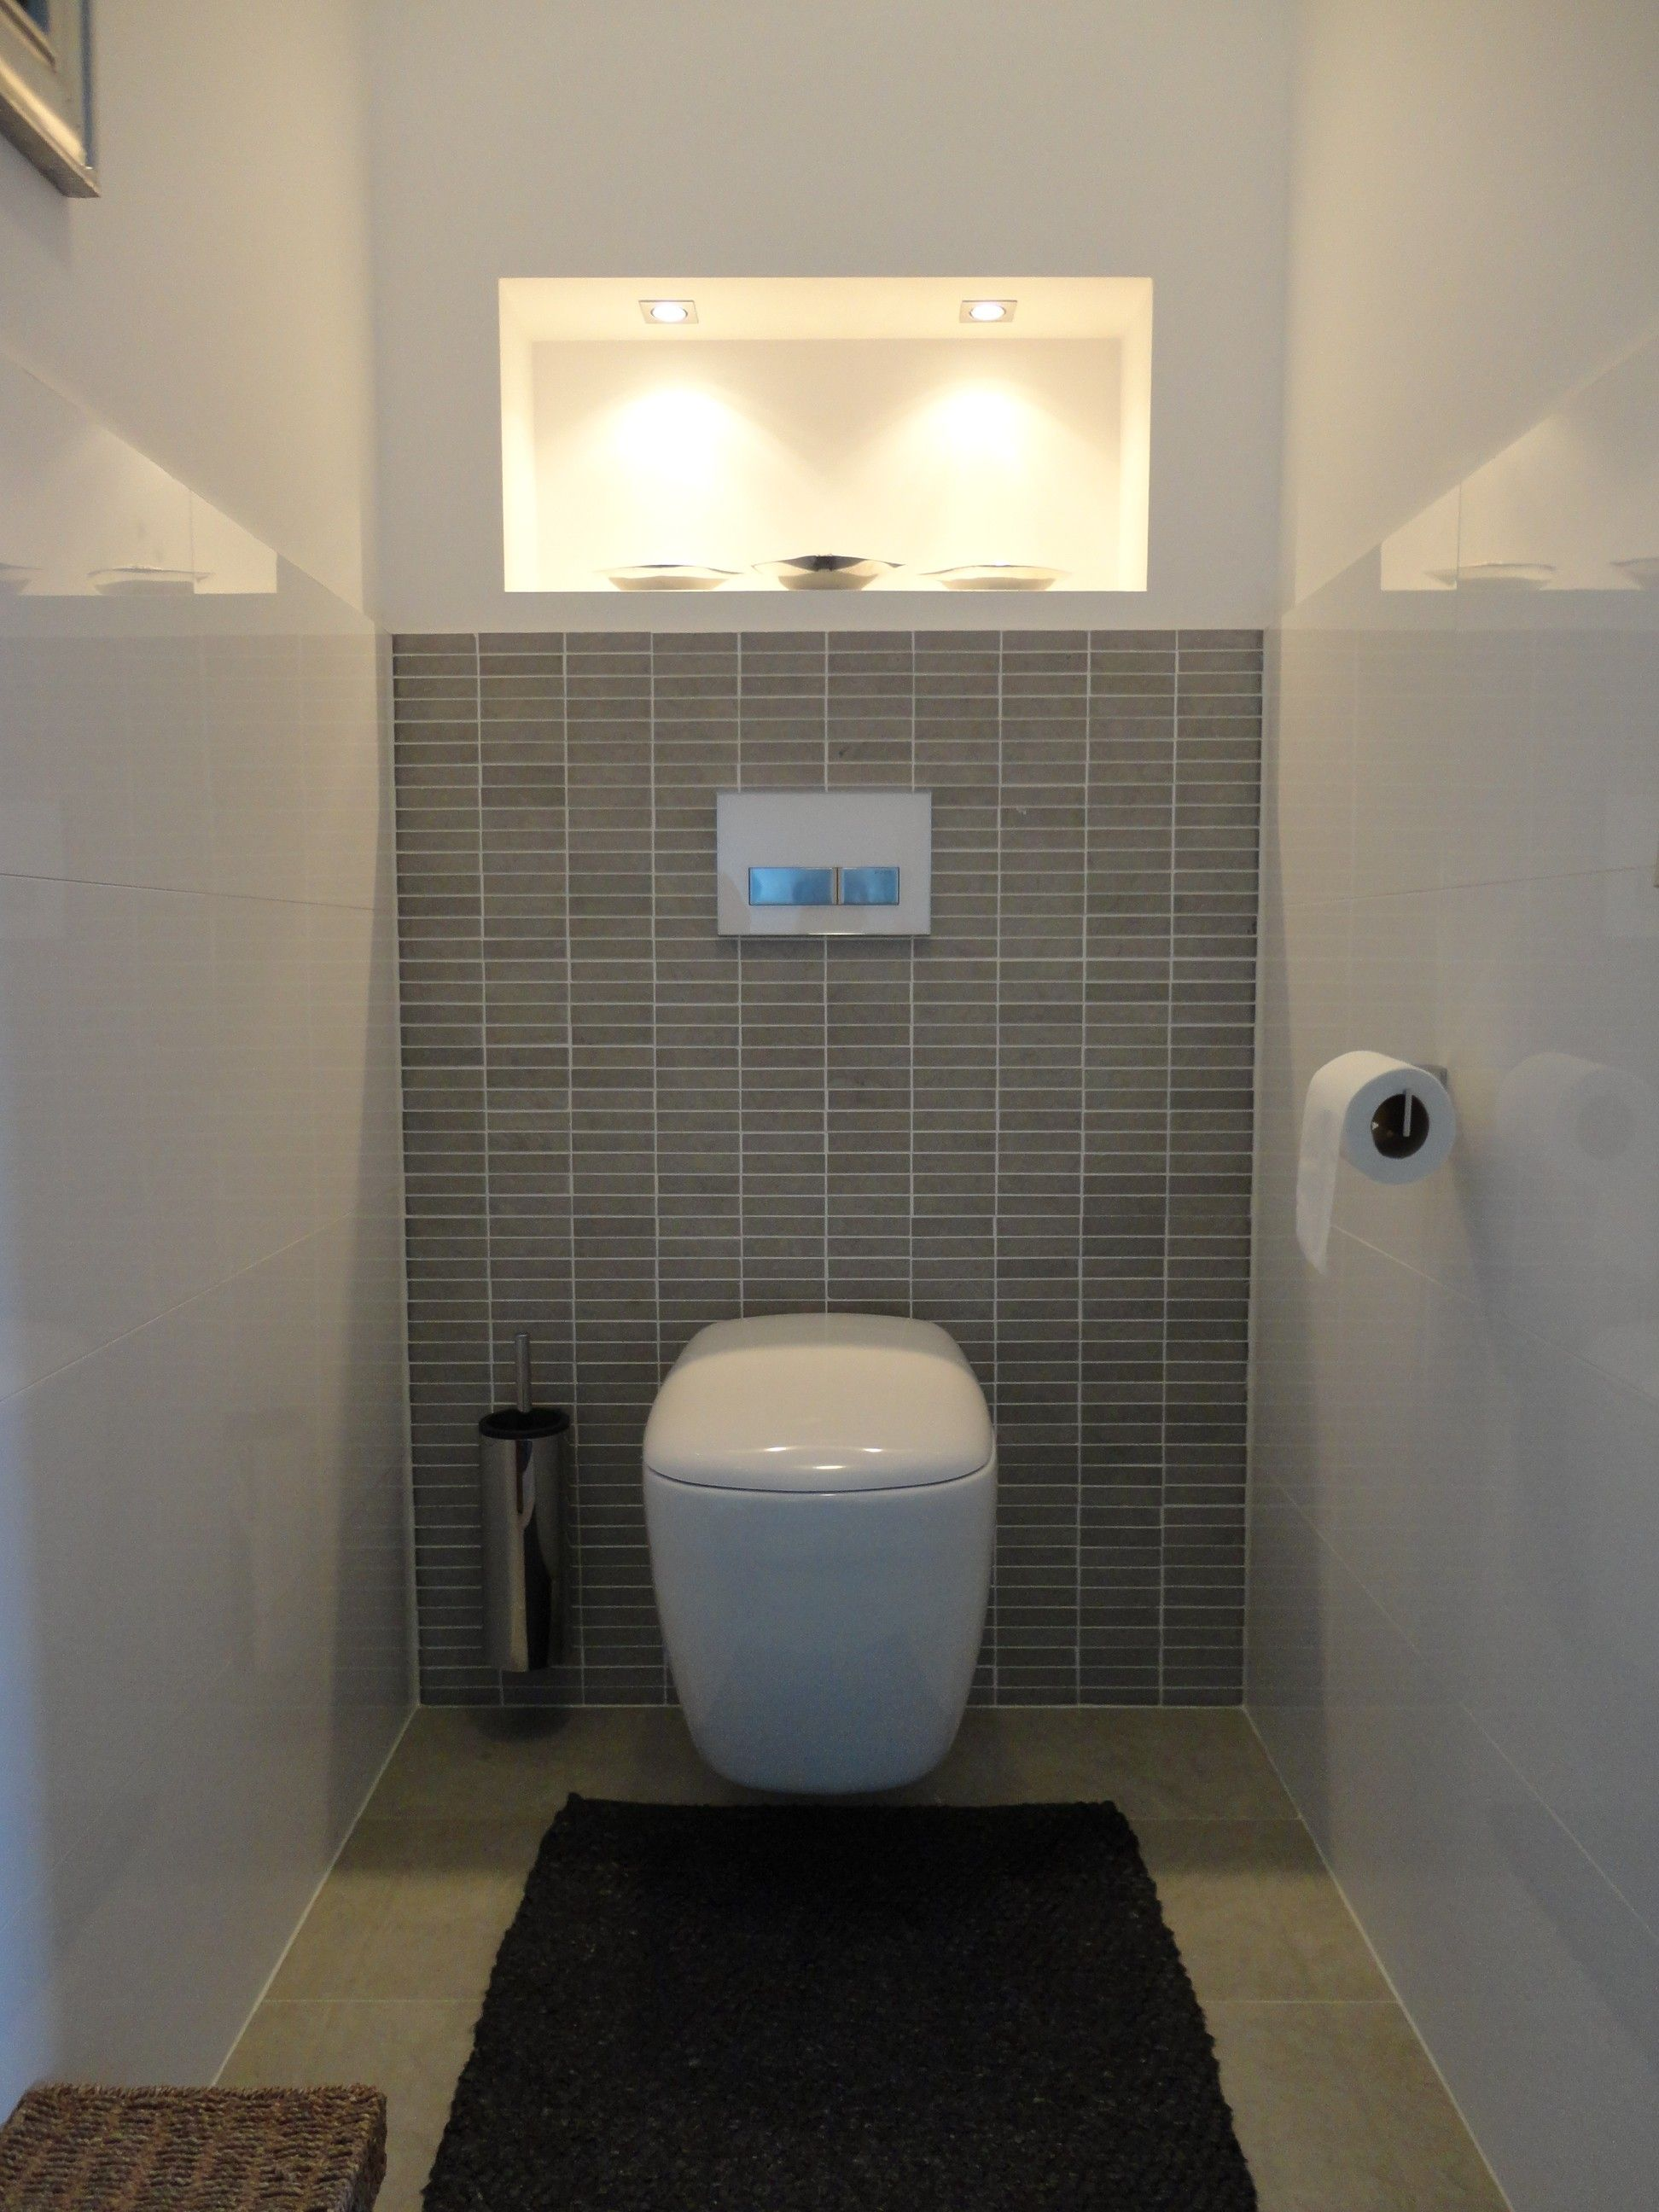 Toilet wonen badkamer pinterest toilet small for Carrelage toilette mural